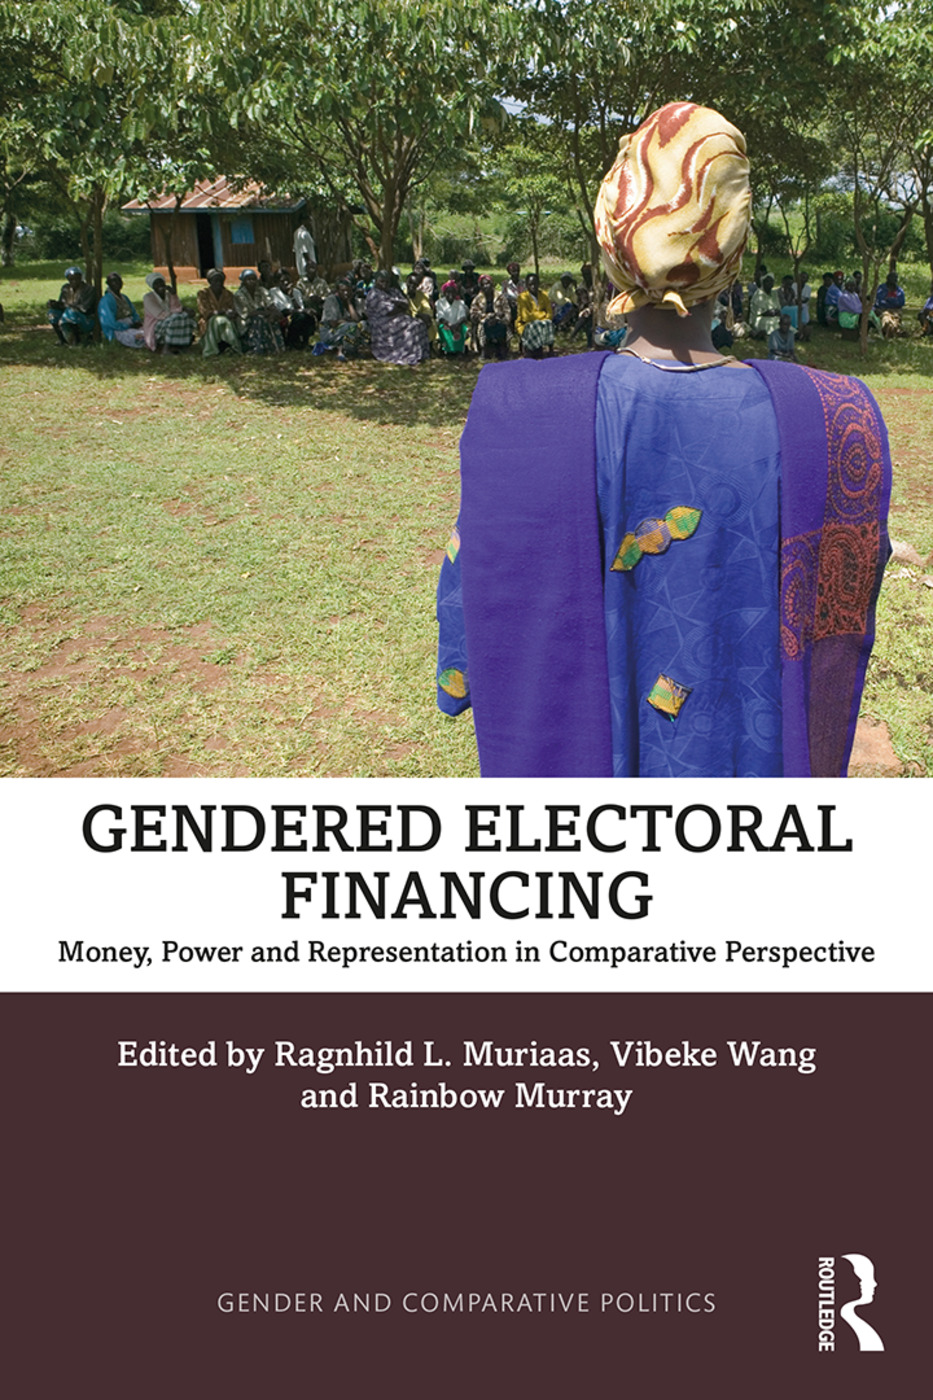 Gendered Electoral Financing: Money, Power and Representation in Comparative Perspective book cover